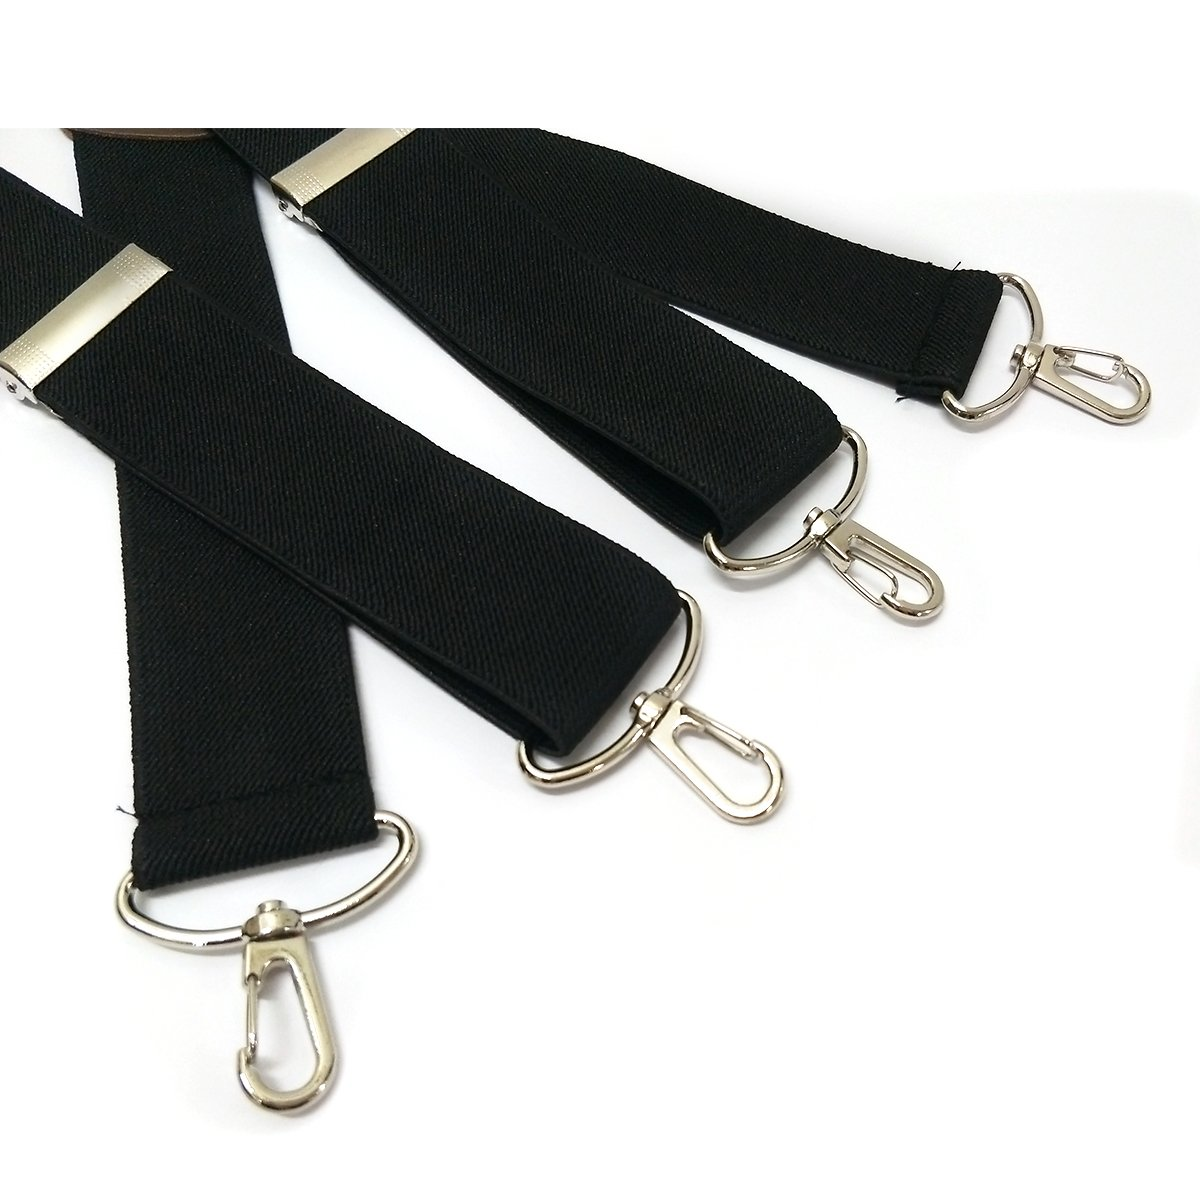 We We Black Suspenders for Men with Hooks Heavy Duty Big and Tall Adjustable Braces